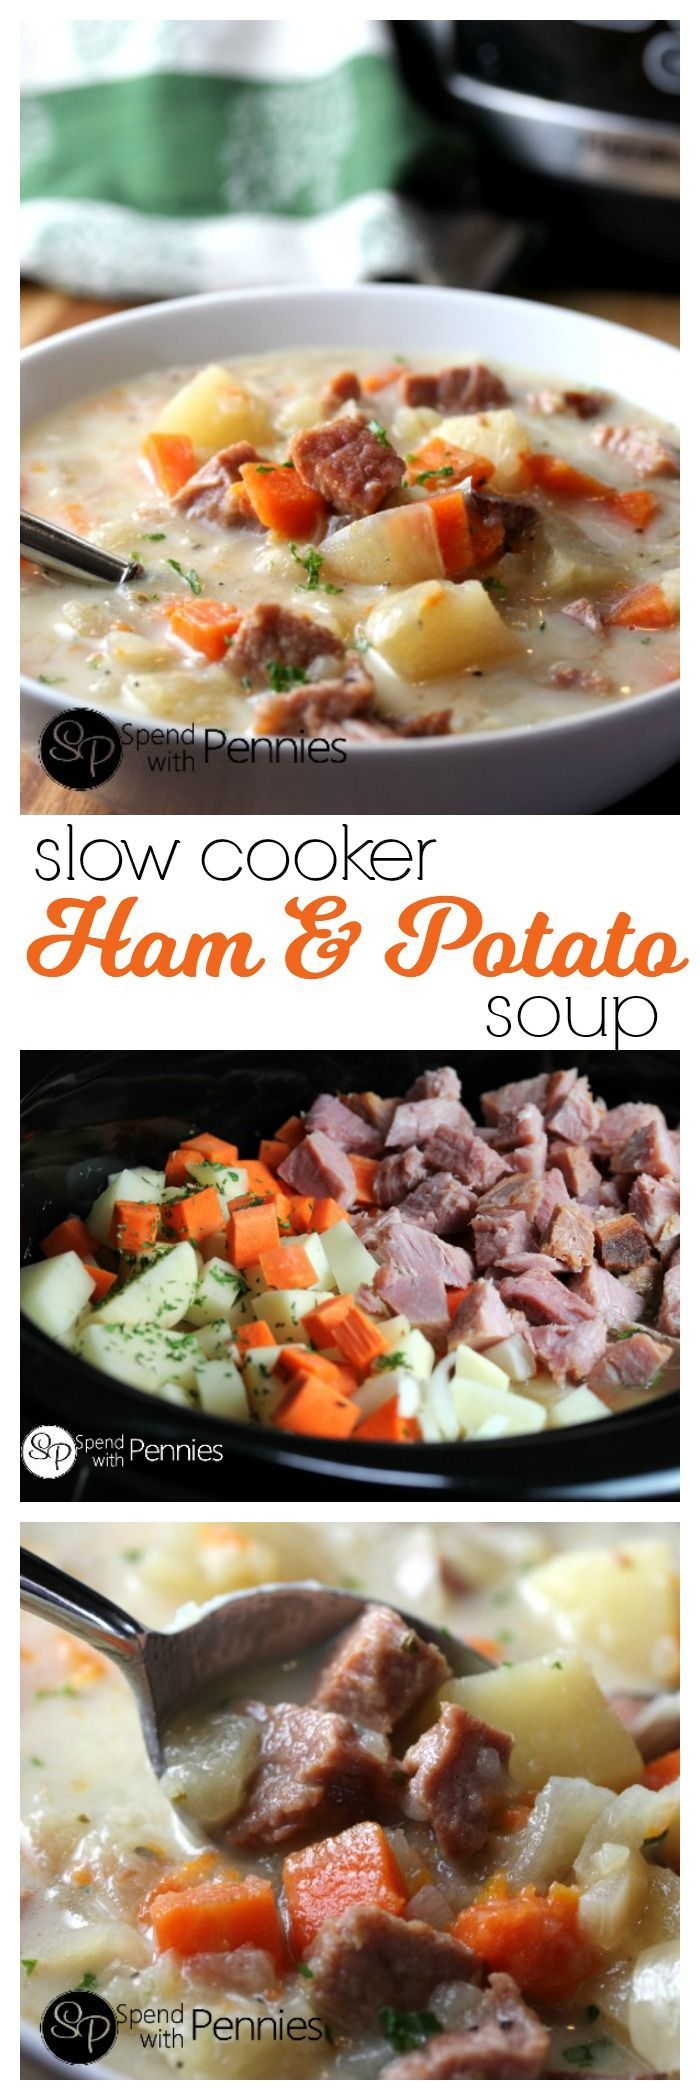 If you've got leftover ham, this is an amazing way to enjoy it!  Slow Cooker Ham & Potato Soup!  The perfect meal to come home to!